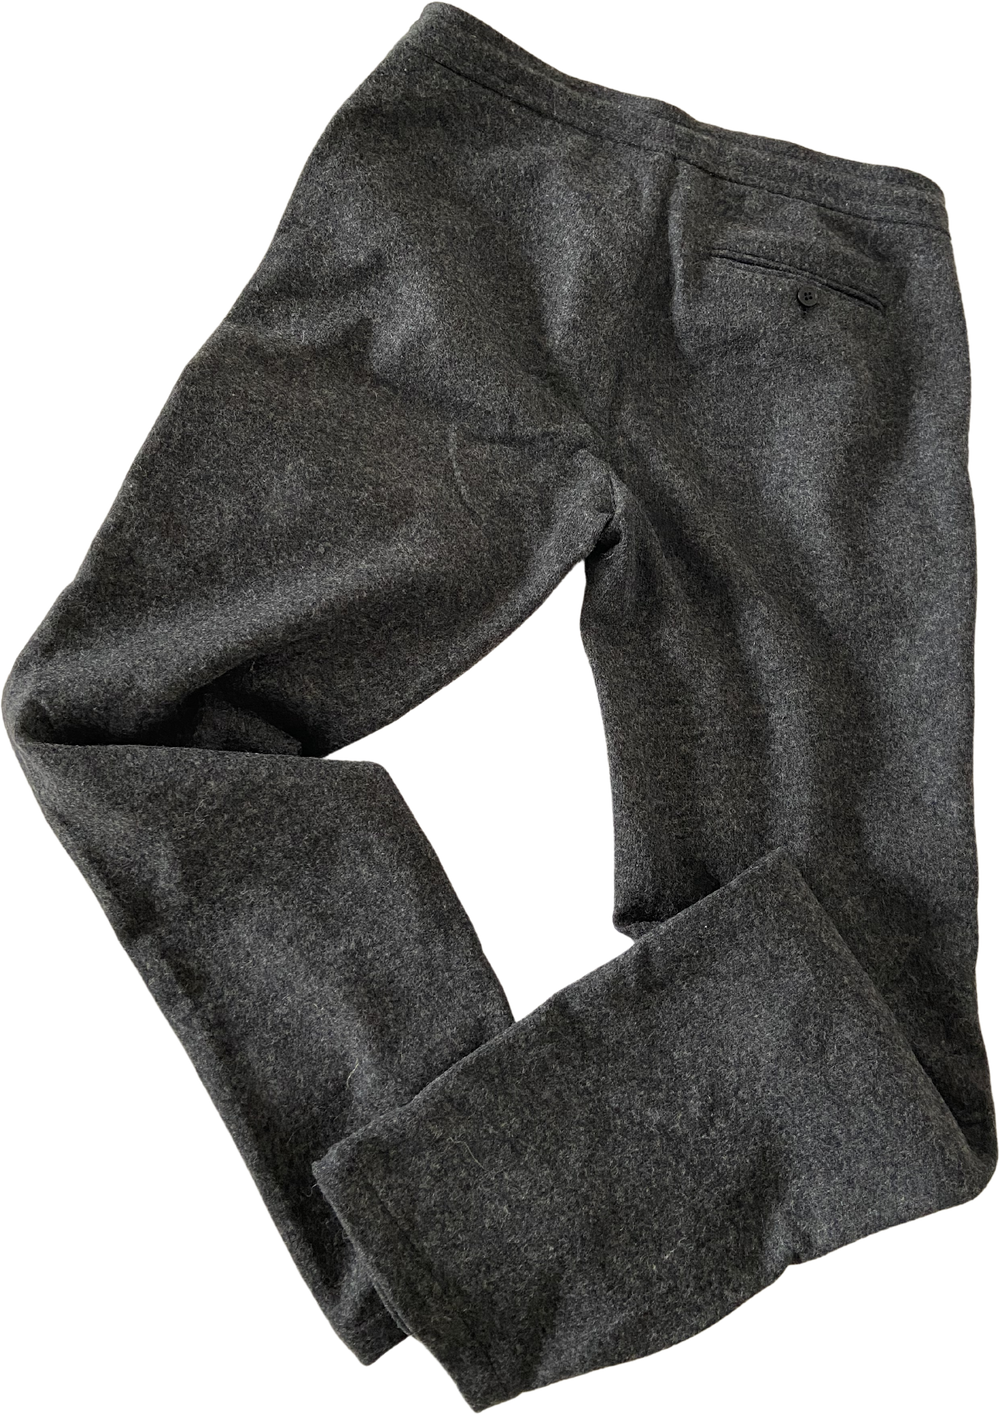 Slate Wool COS Trousers Draw String Size 34